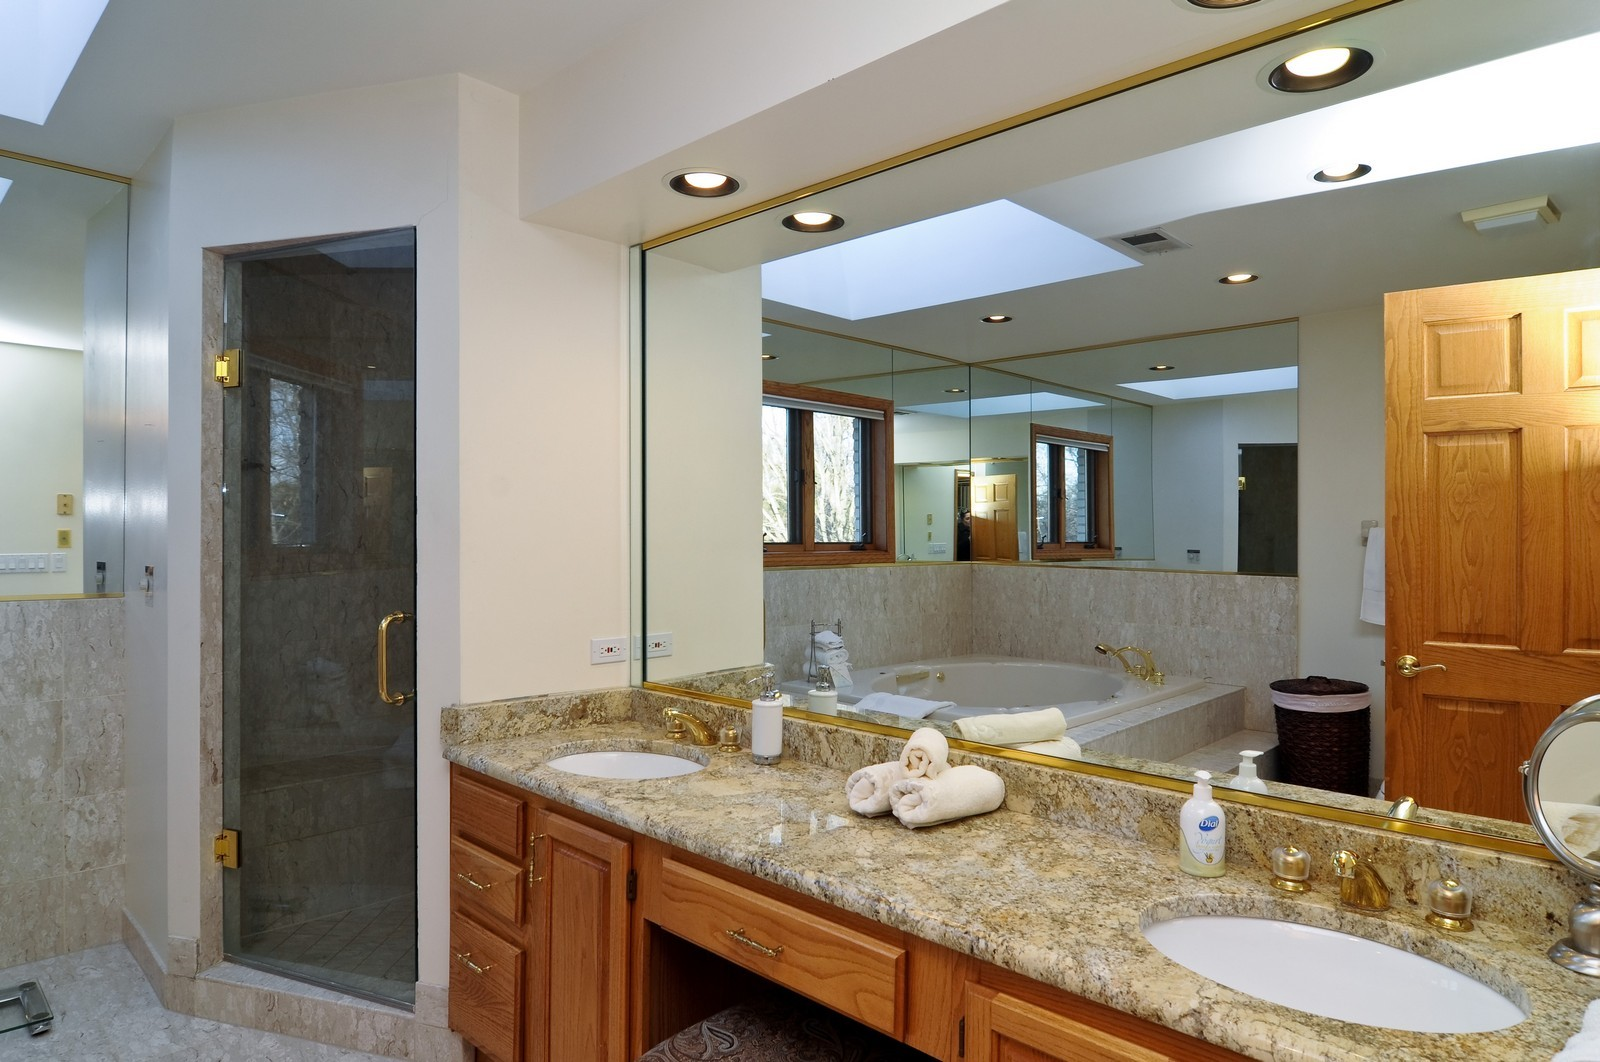 Real Estate Photography - 1181 Fairview Ln, Long Grove, IL, 60047 - Master Bathroom